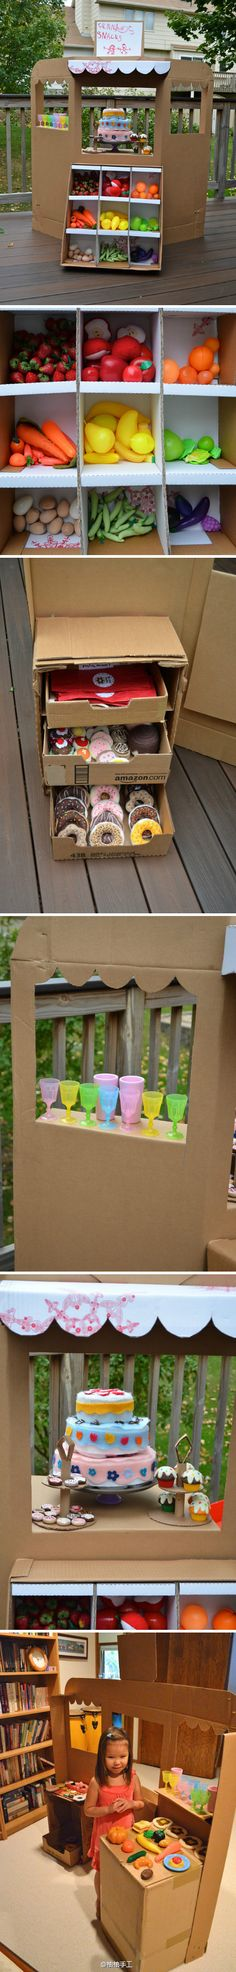 this is incredible if you're willing to put in the time and let your children actually paint 3R - Reduce Reuse Recycle